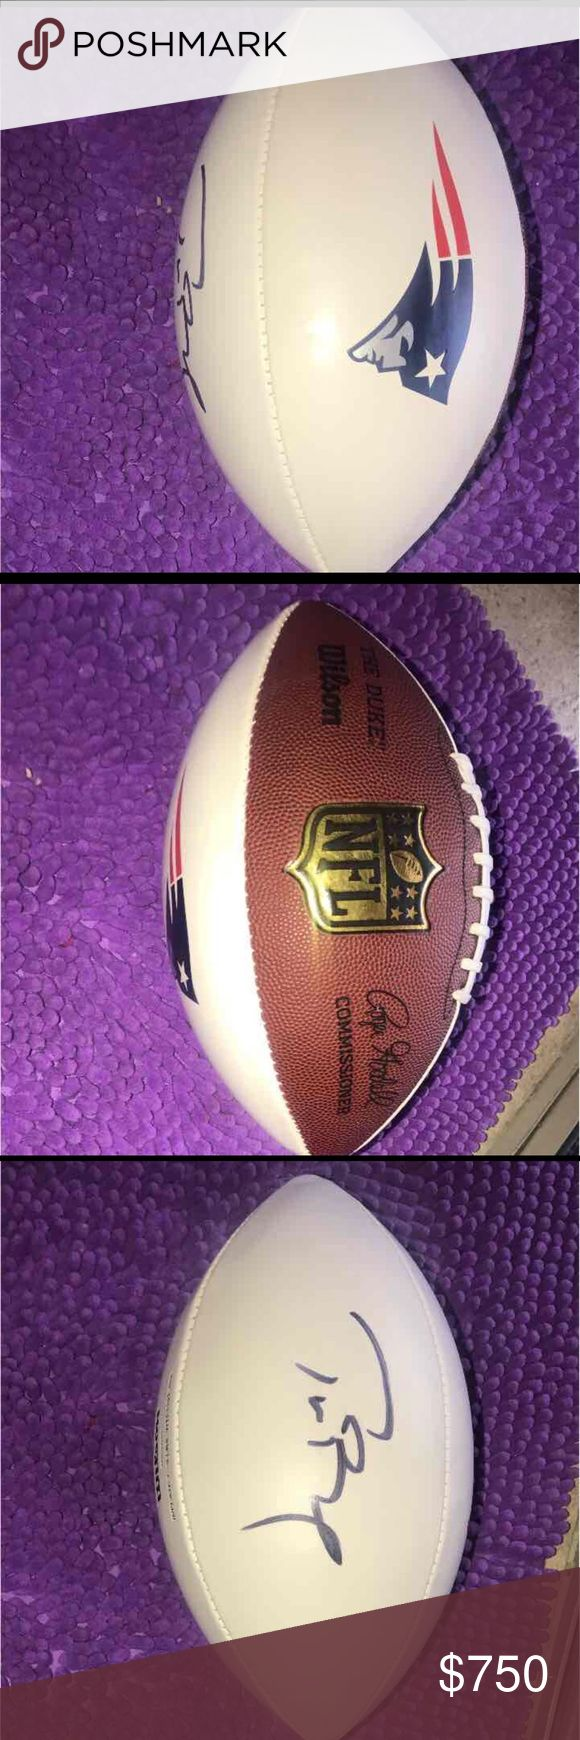 Signed Tom Brady Football My brother was apart of the Best Buddies event ran by Tom brady in 2016 . He was kind enough to give my family and I a signed football after taking photos with us . Although it was a near opportunity I have no use for the football and am saving for a car :). Other